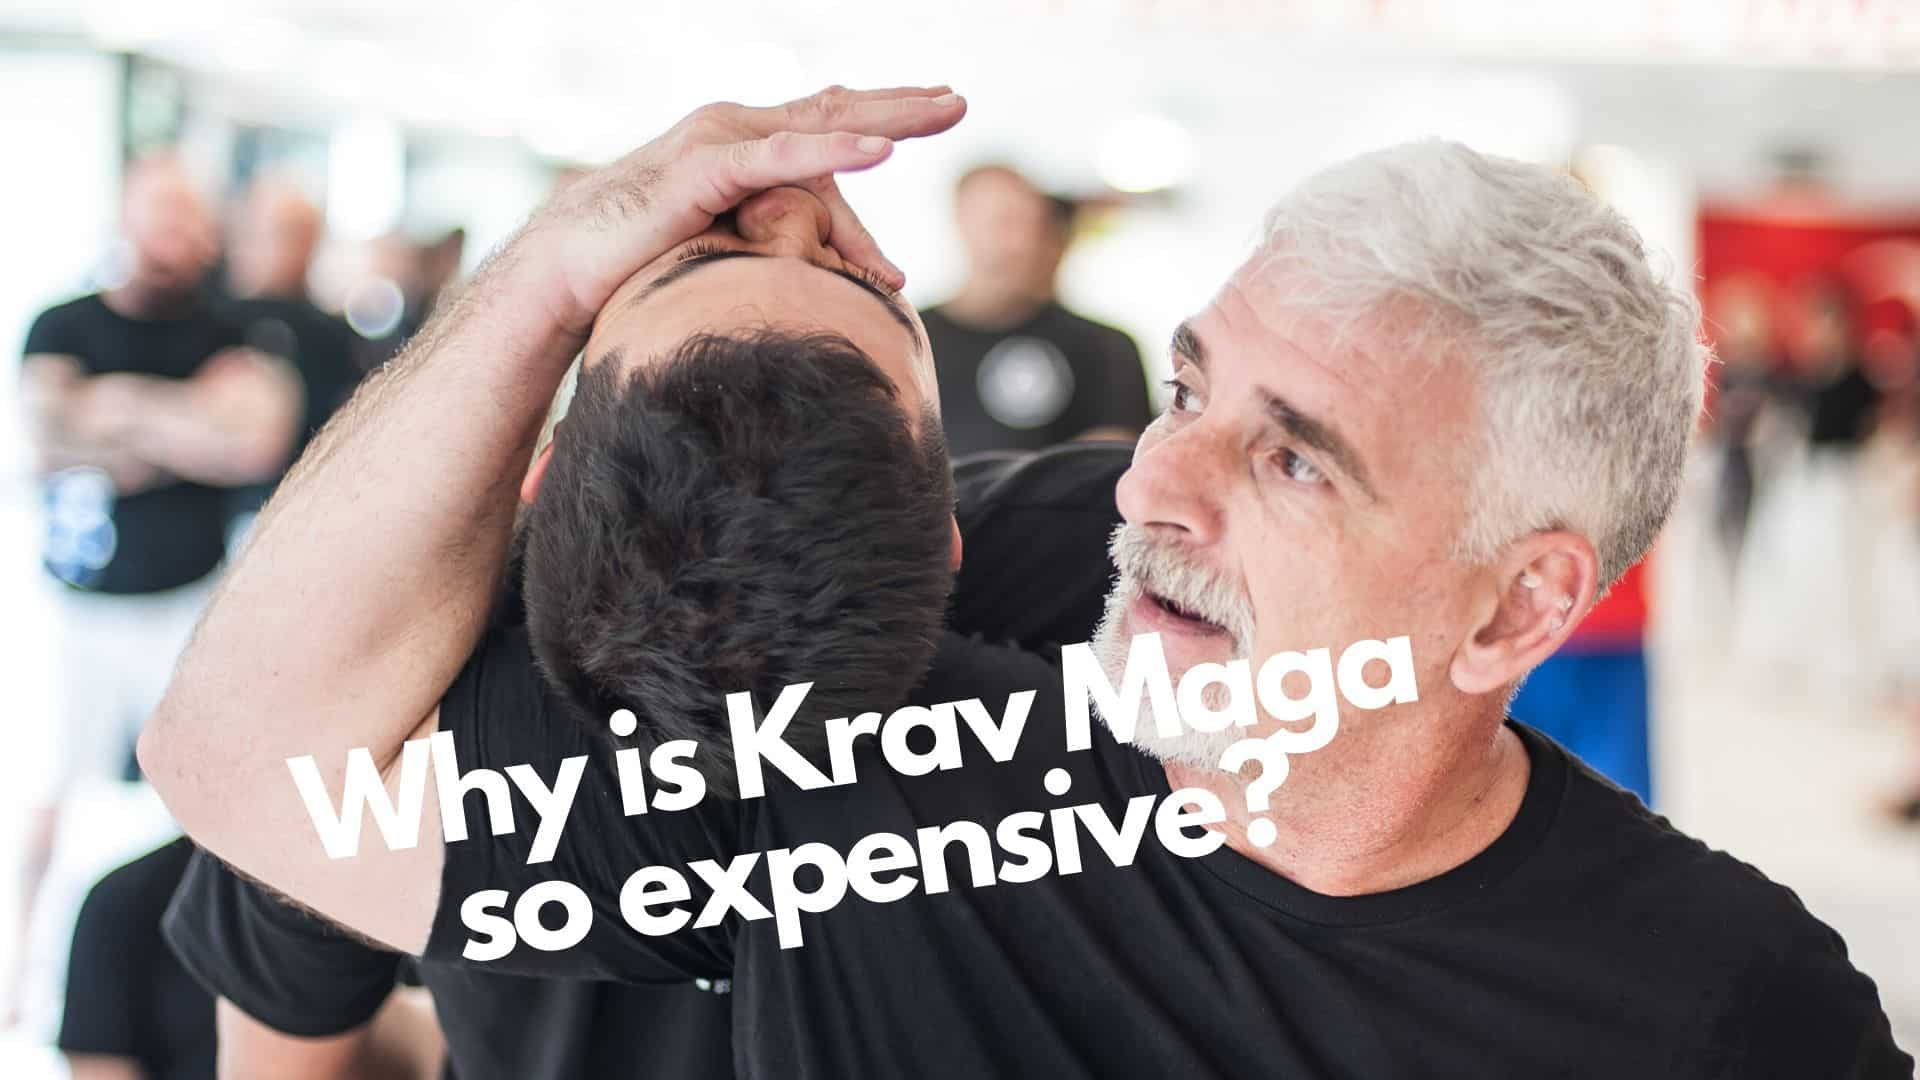 Why is Krav Maga so expensive? More about courses & pricing